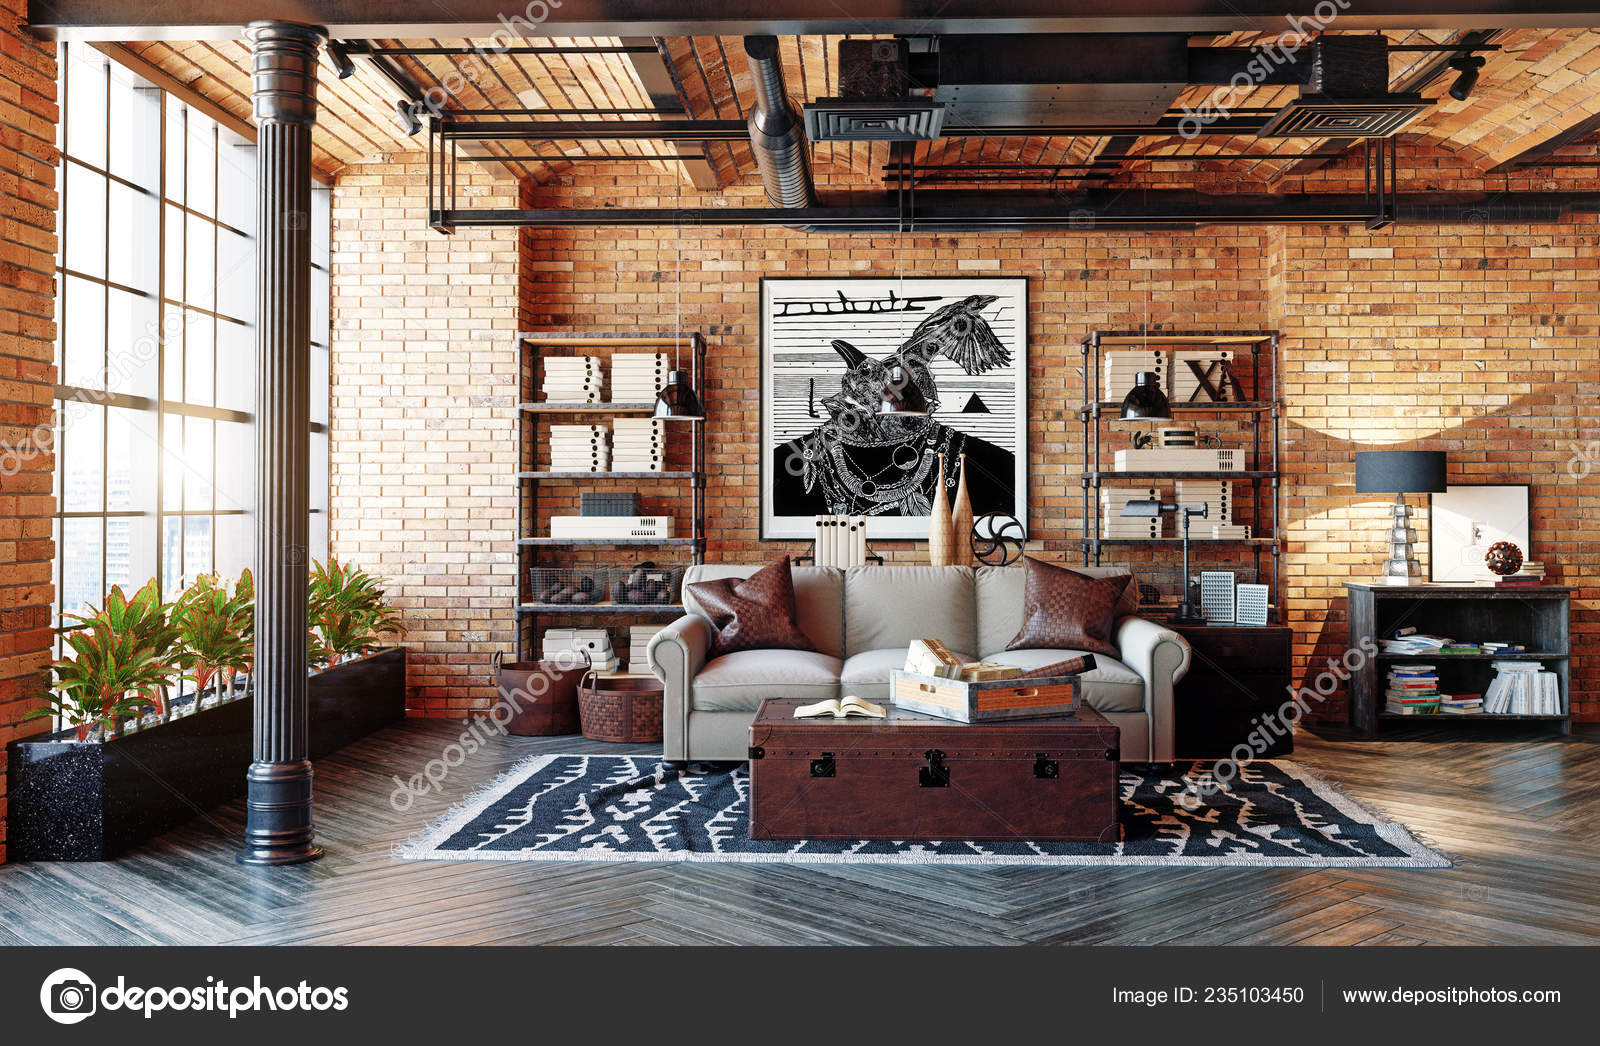 Modern Loft Living Room Interior Living Design Style Rendering Stock Photo C Vicnt2815 235103450